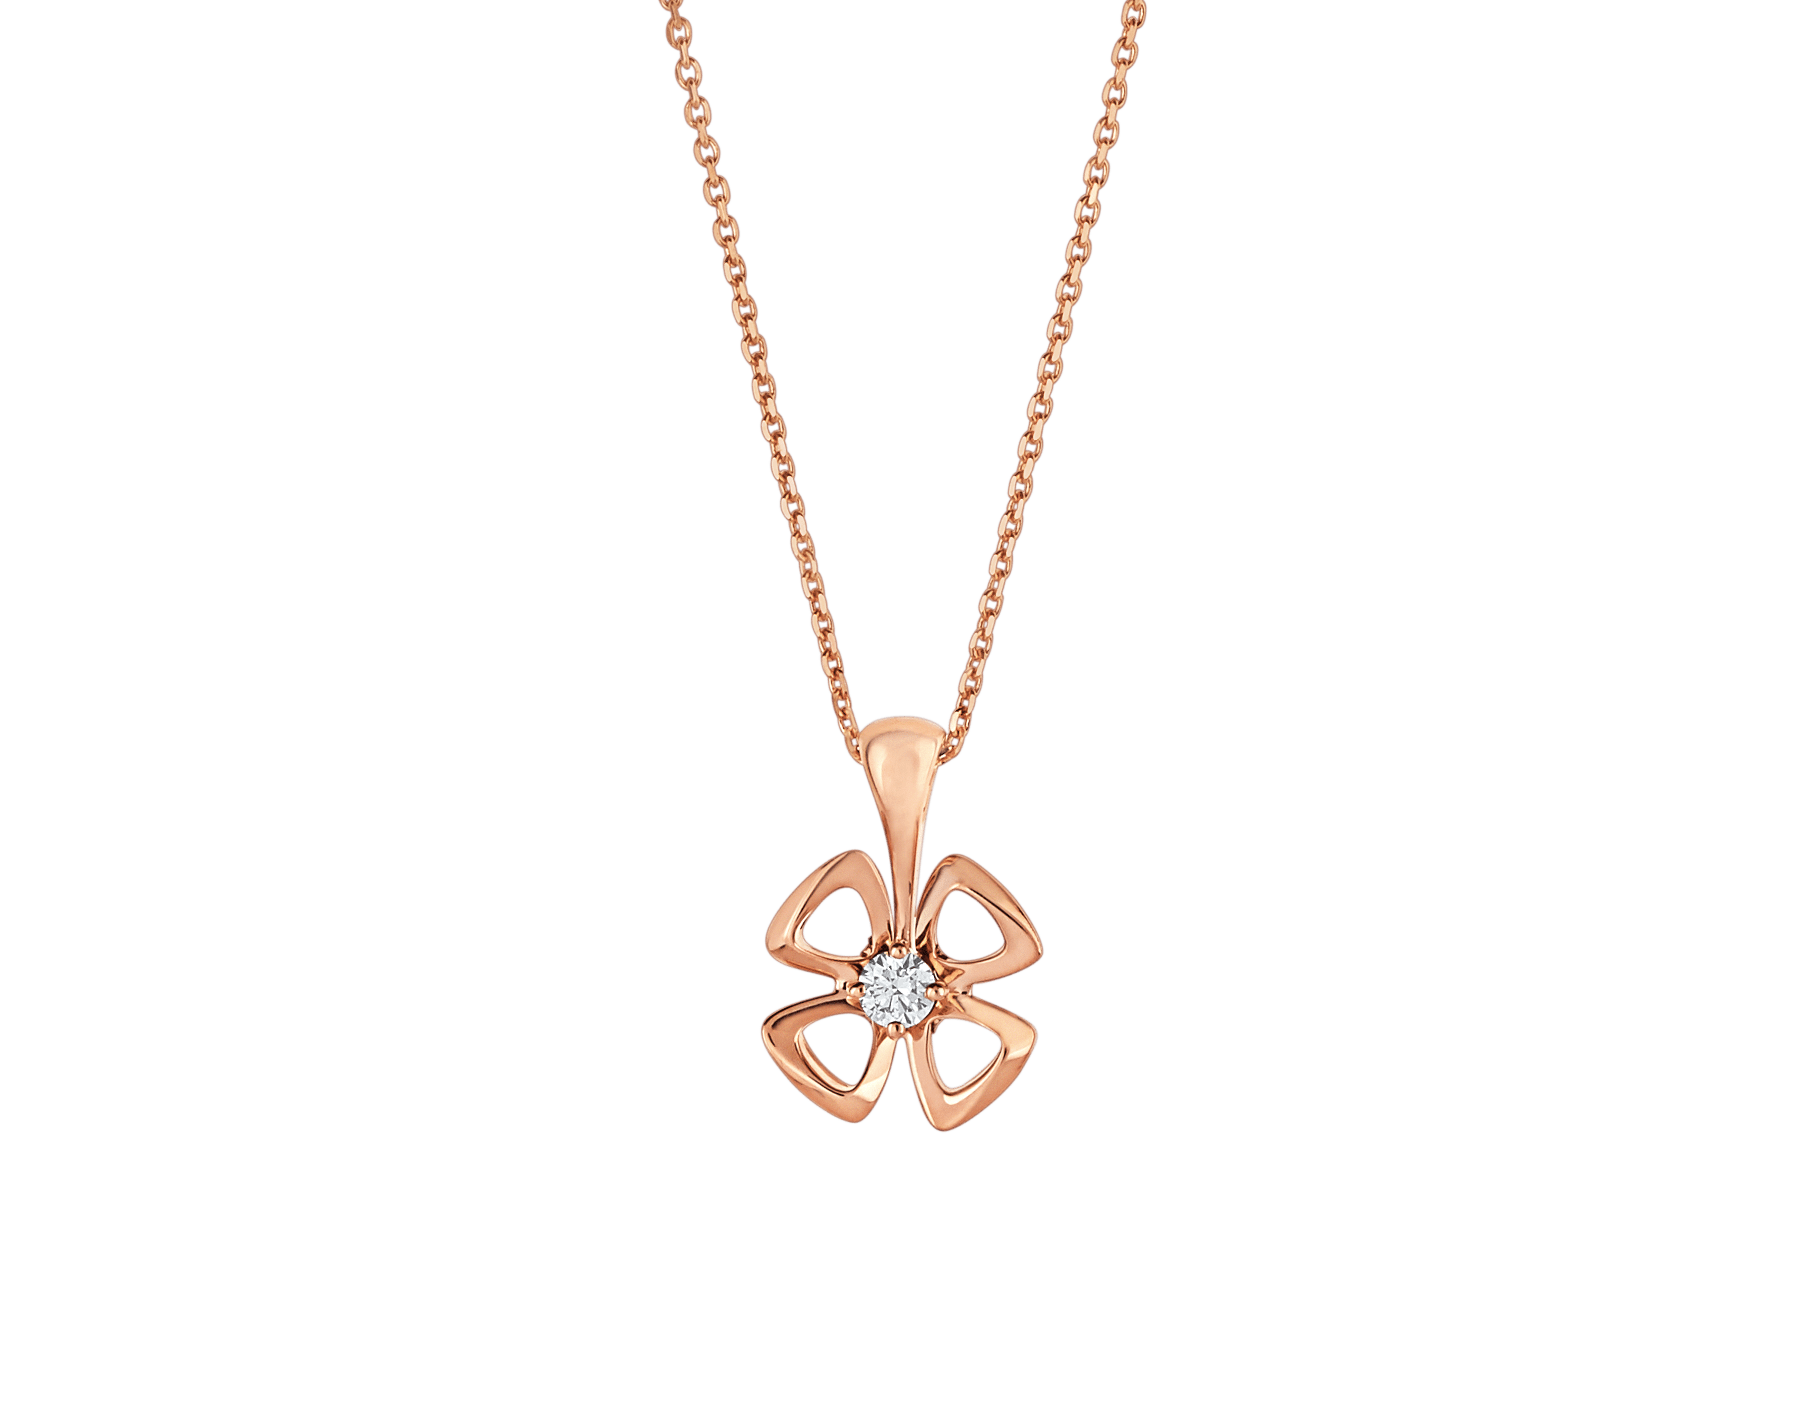 Fiorever 18 kt rose gold necklace set with a central diamond (0.10 ct) 355324 image 1